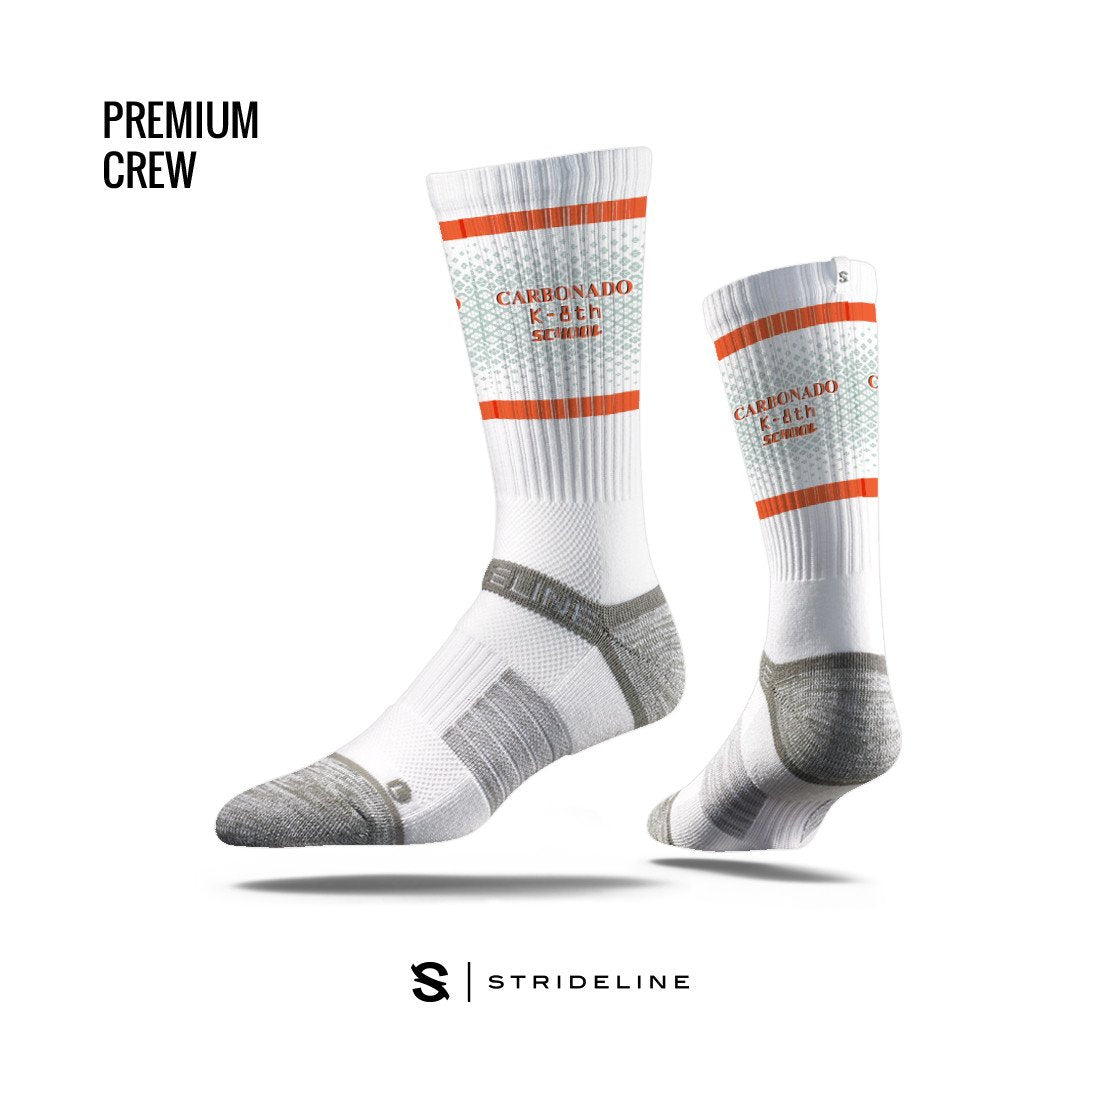 Carbonado K-8th School Apparel | Socks | Premium